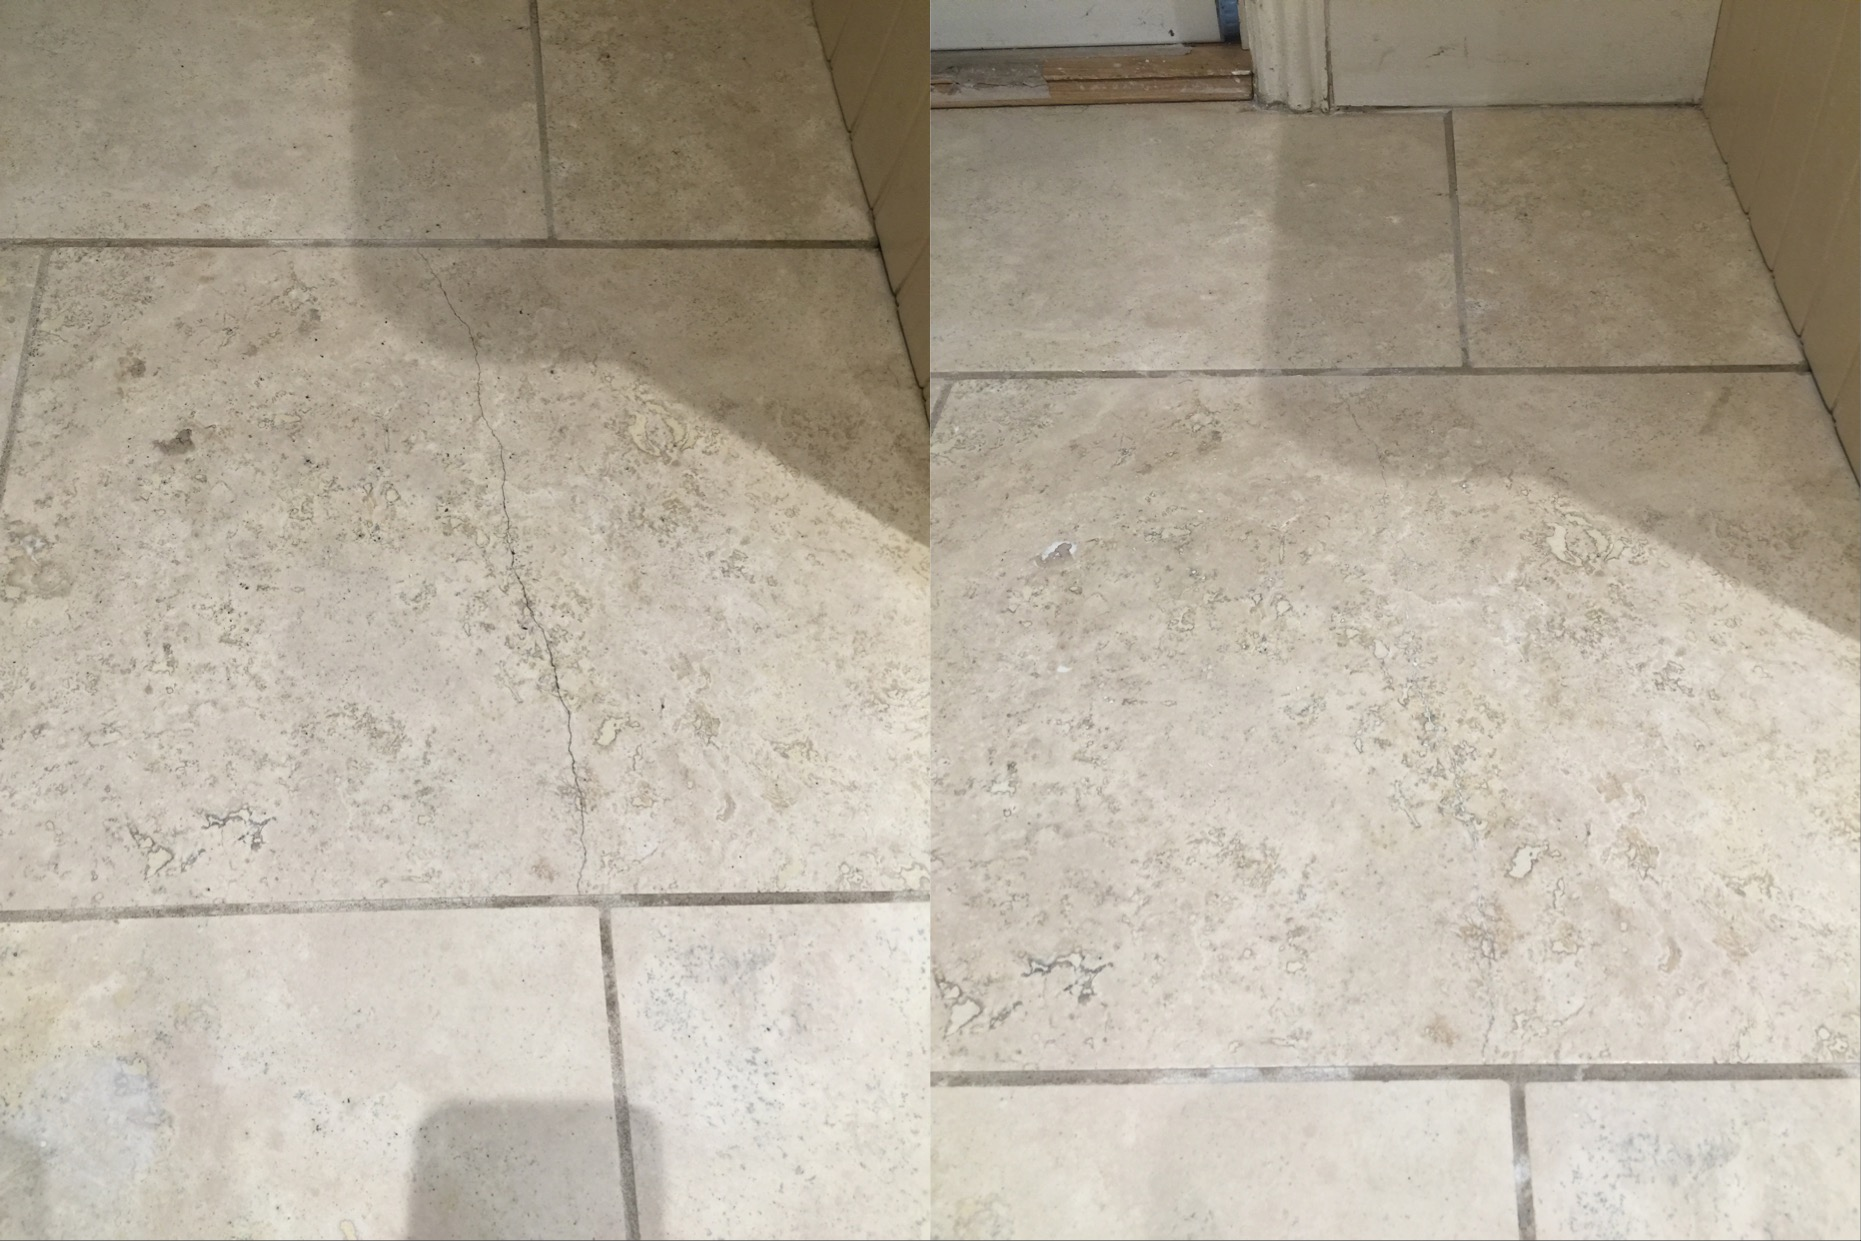 Travertine Kitchen Floor Cracked Tile Before and After East Byfleet